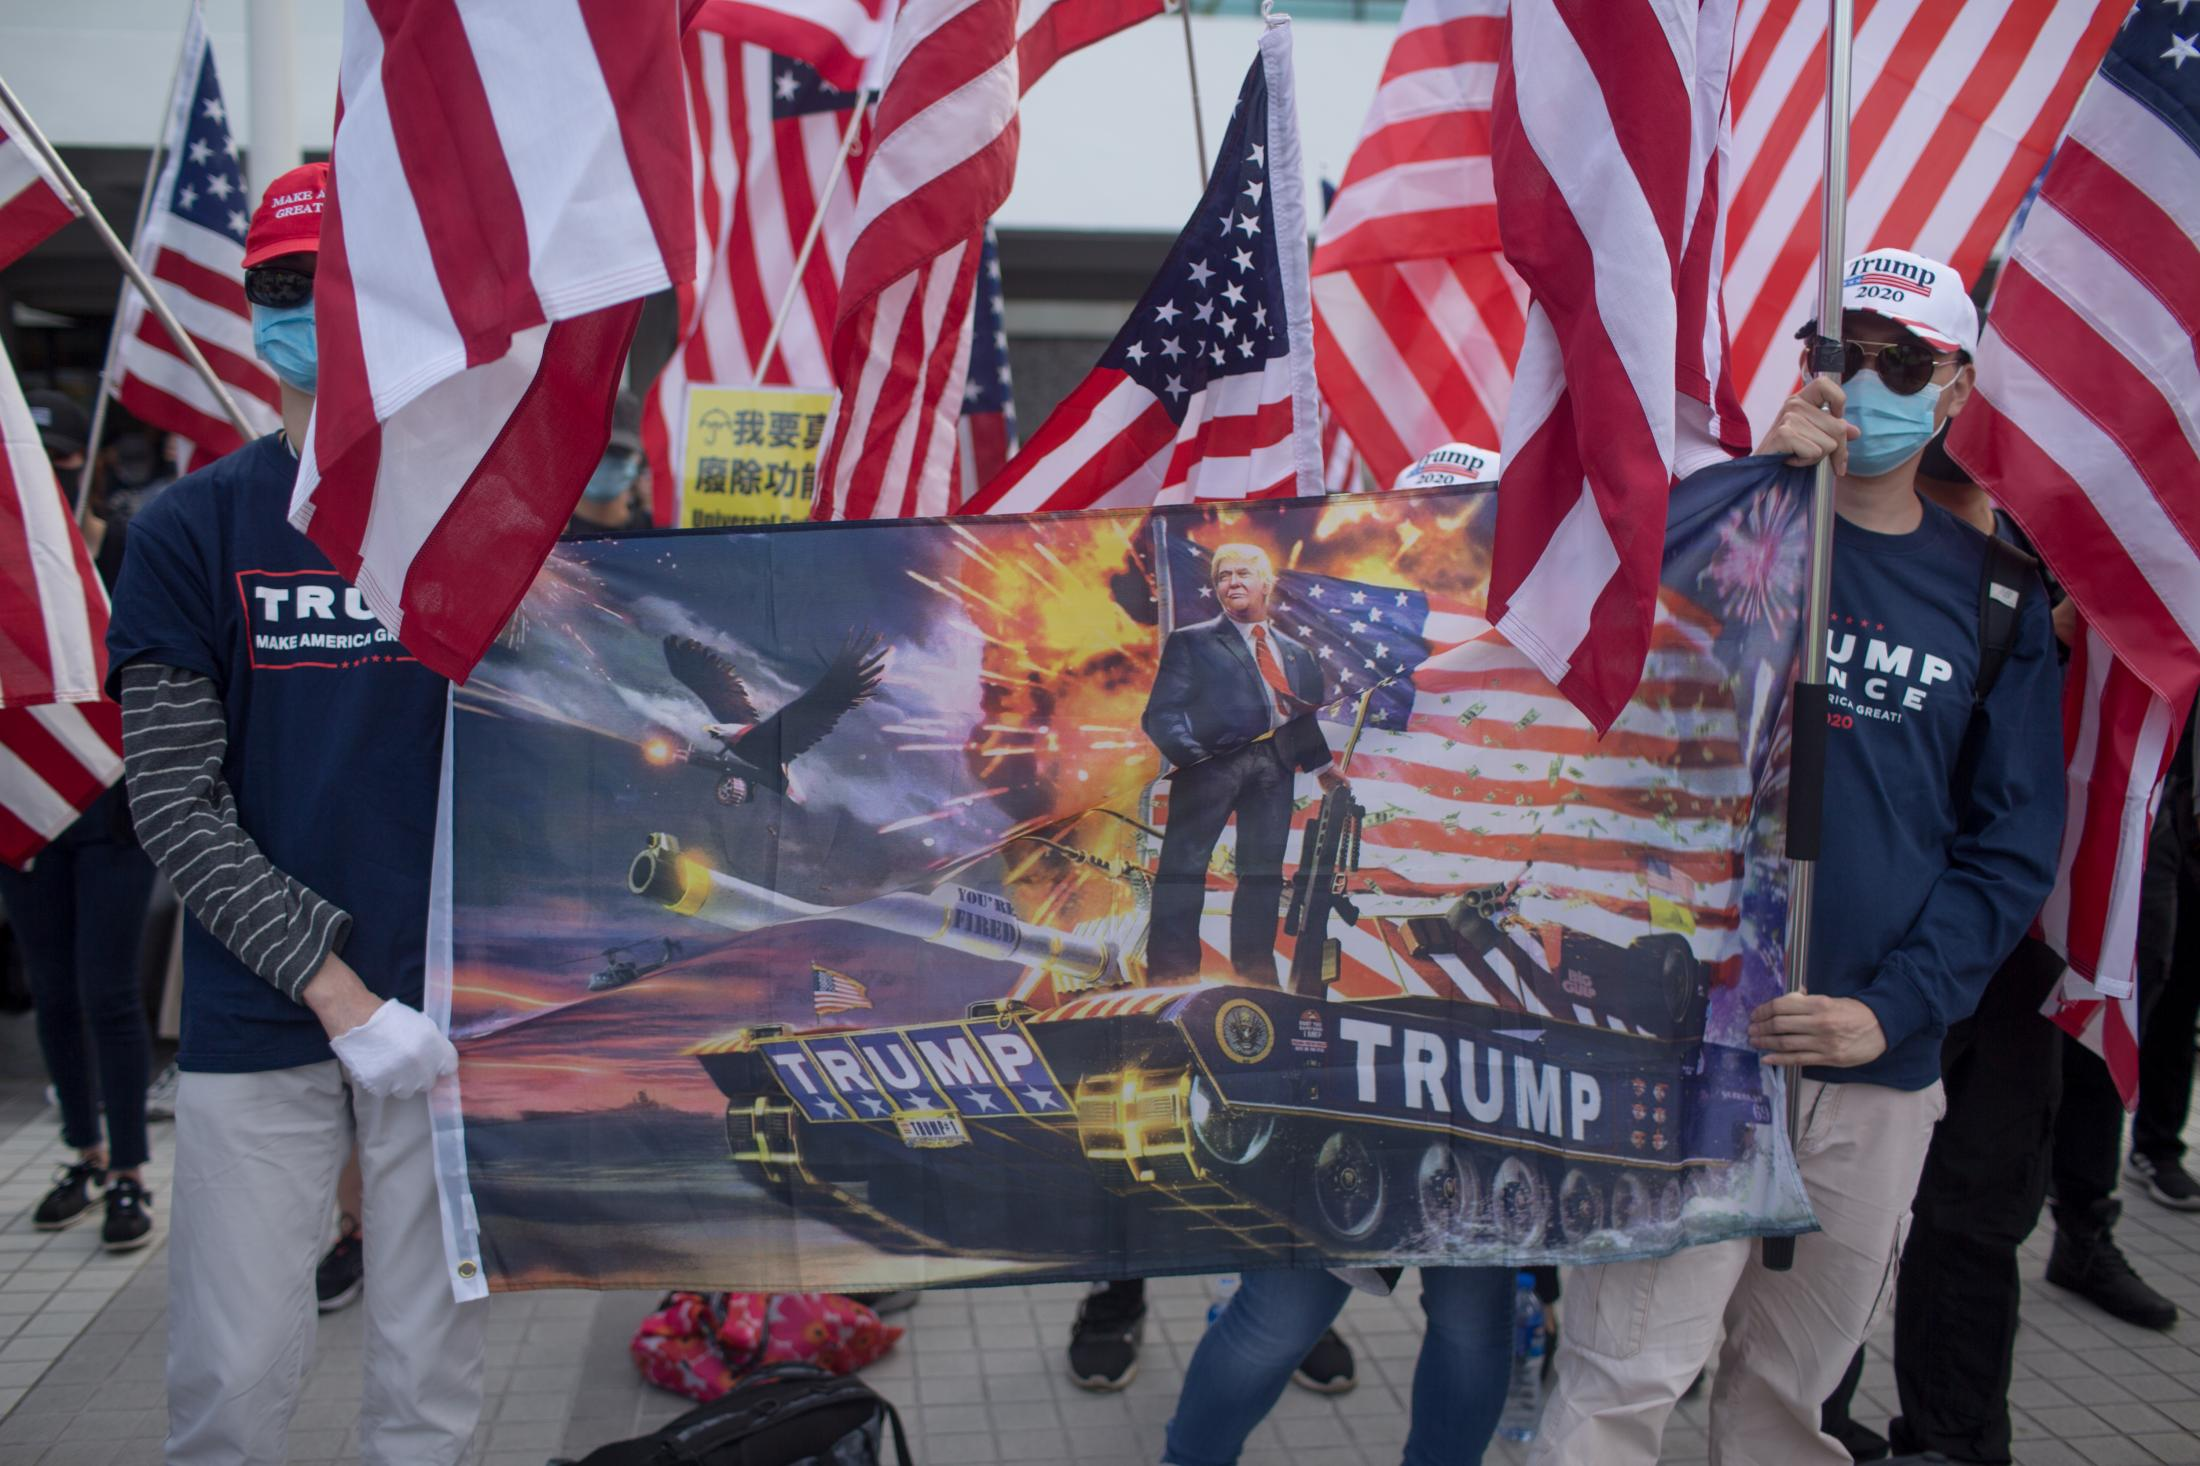 A group marched with United States flags and pro-Trump make America great again merchandise at Edinburgh Place in Central Hong Kong on January 12, 2020, during the Karma to Commies pre-march assembly.